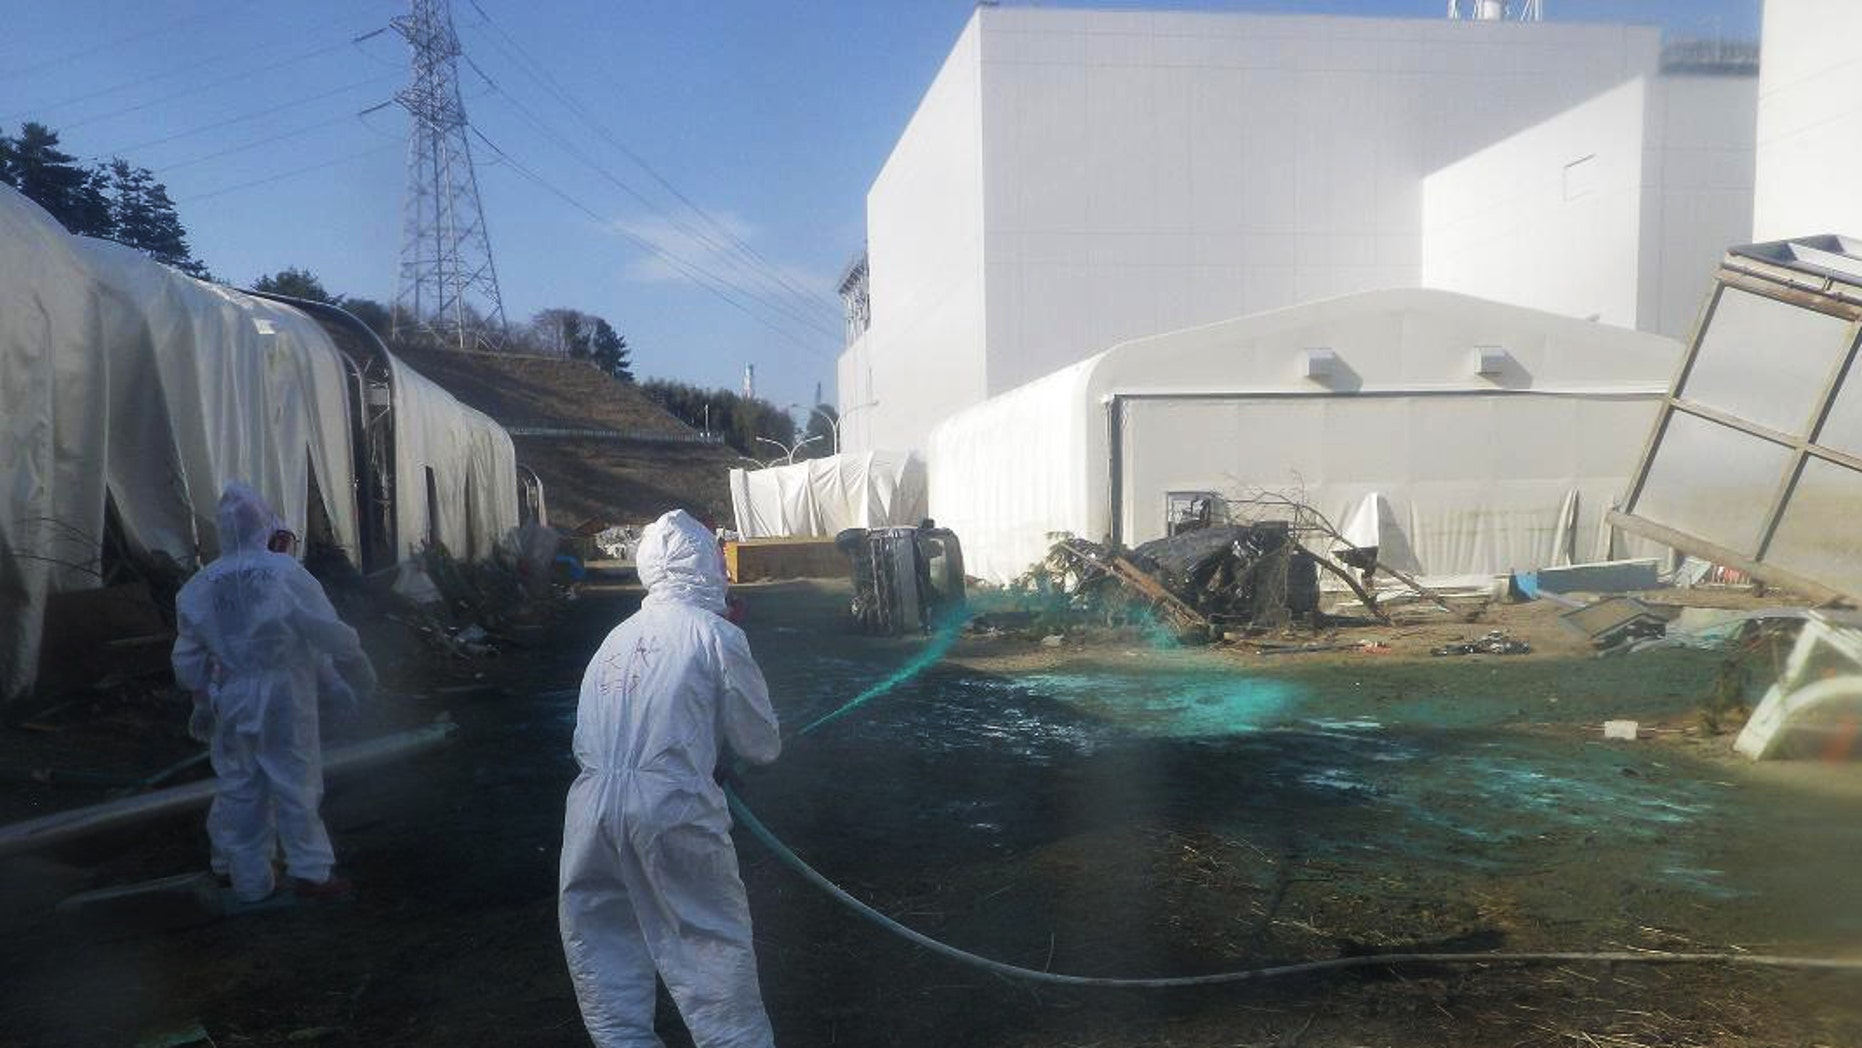 April 1: Workers for the company experimentally spray adhesive synthetic resin over the ground at the Fukushima Dai-ichi nuclear power plant in Okumamachi, northeastern Japan. TEPCO expects the resin spraying to prevent dust exposed to radiation materials from spreading out of the premises. (AP/TEPCO)